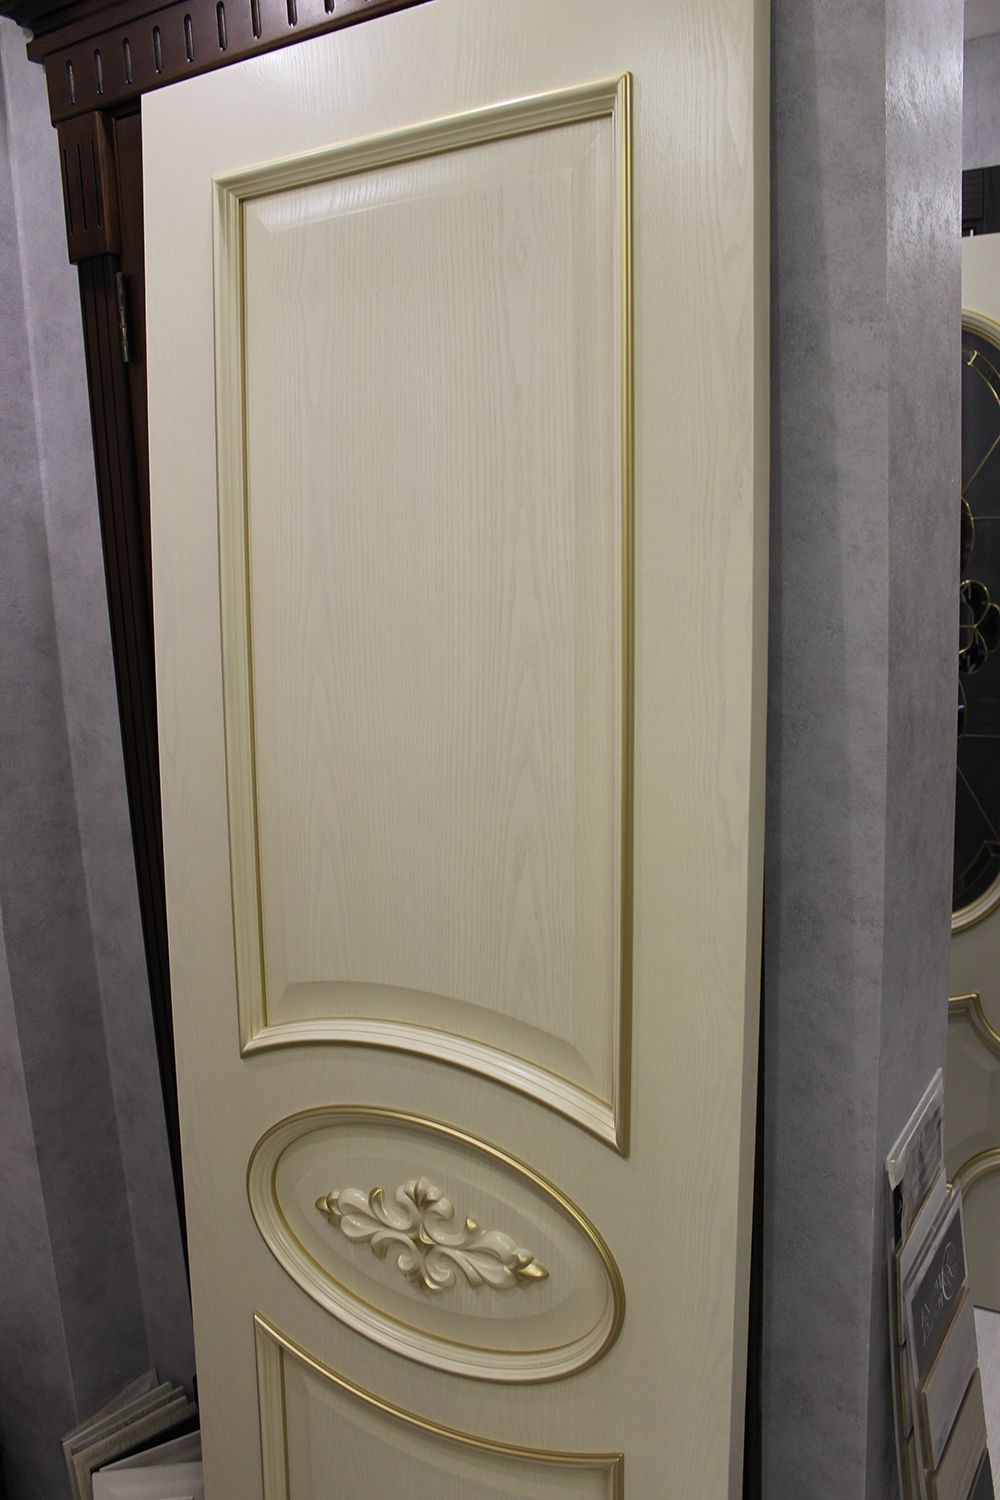 Luxurious interior masonite door Baroque